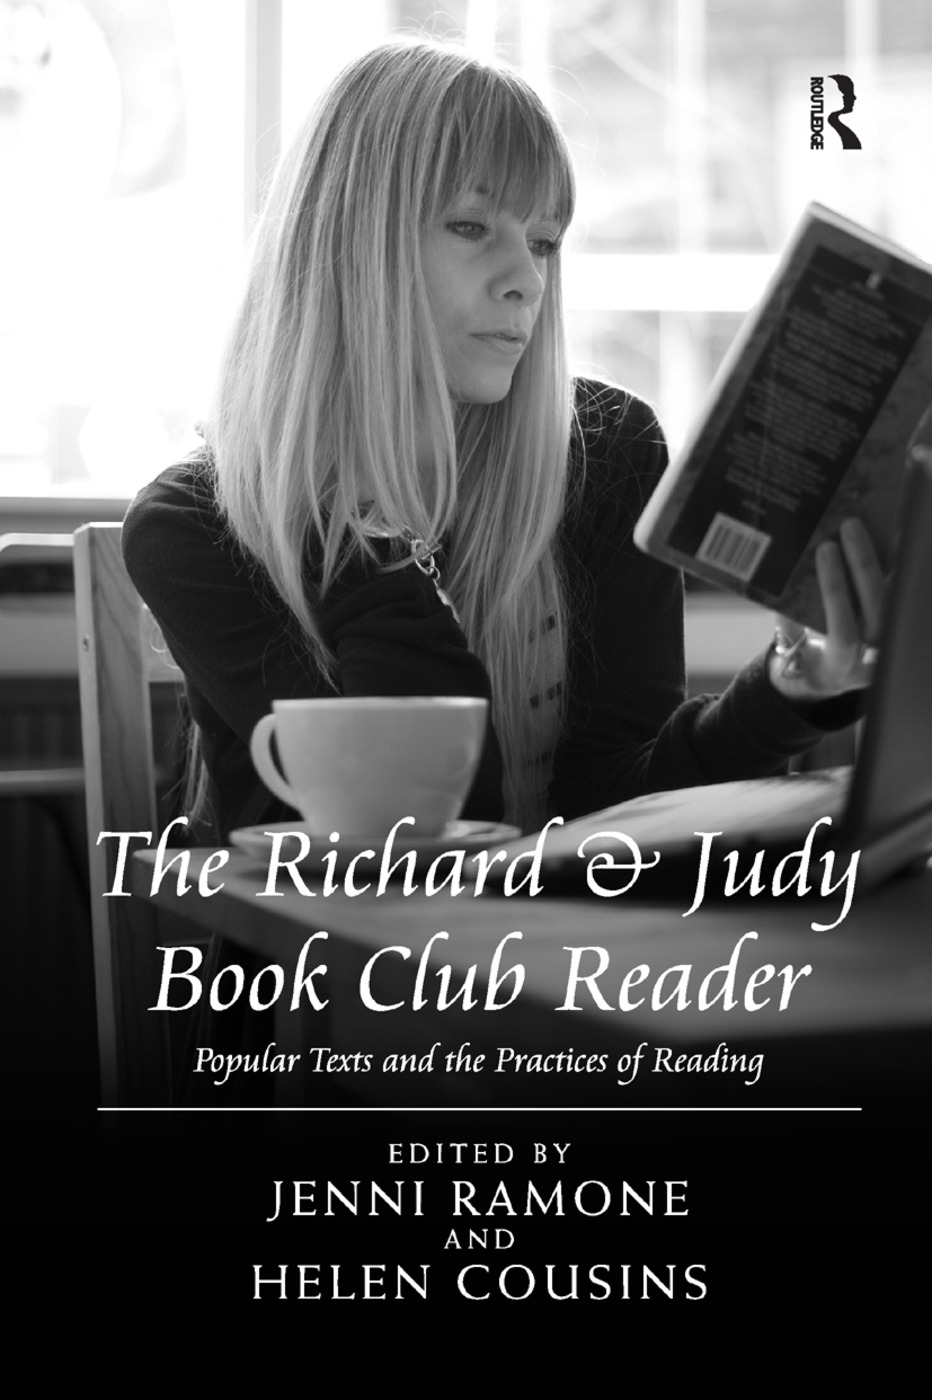 The Richard & Judy Book Club Reader: Popular Texts and the Practices of Reading book cover